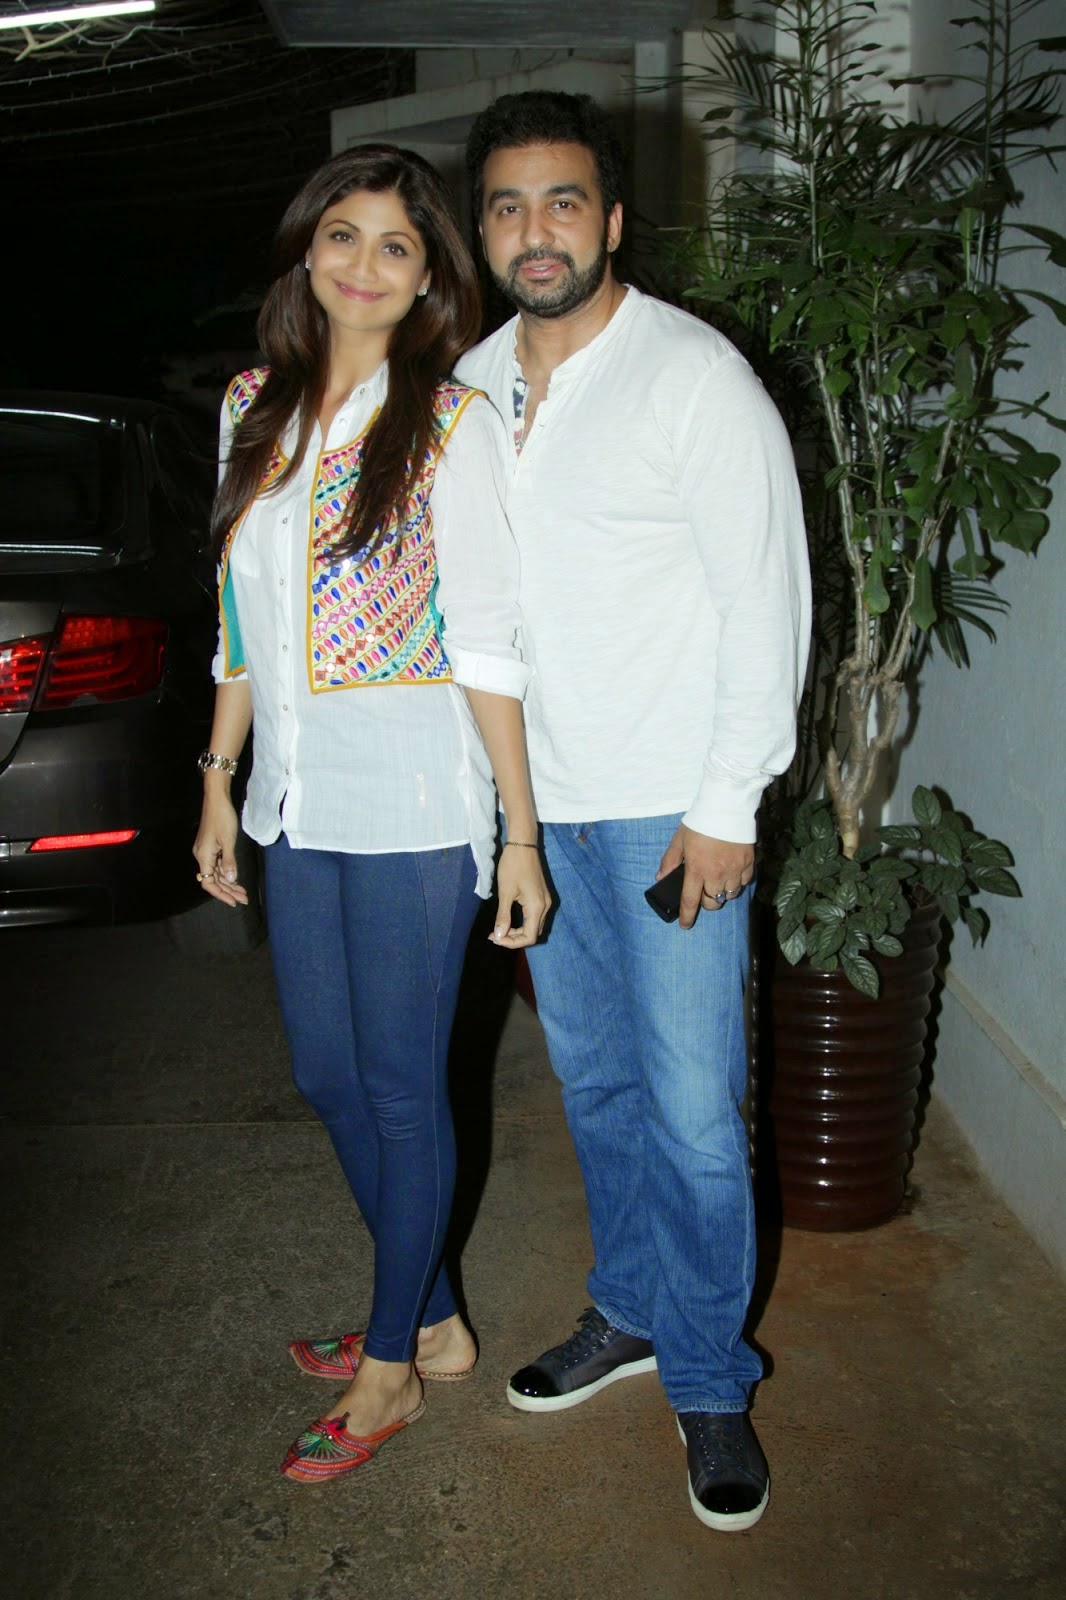 Shilpa Shetty along with her husband Raj Kundra